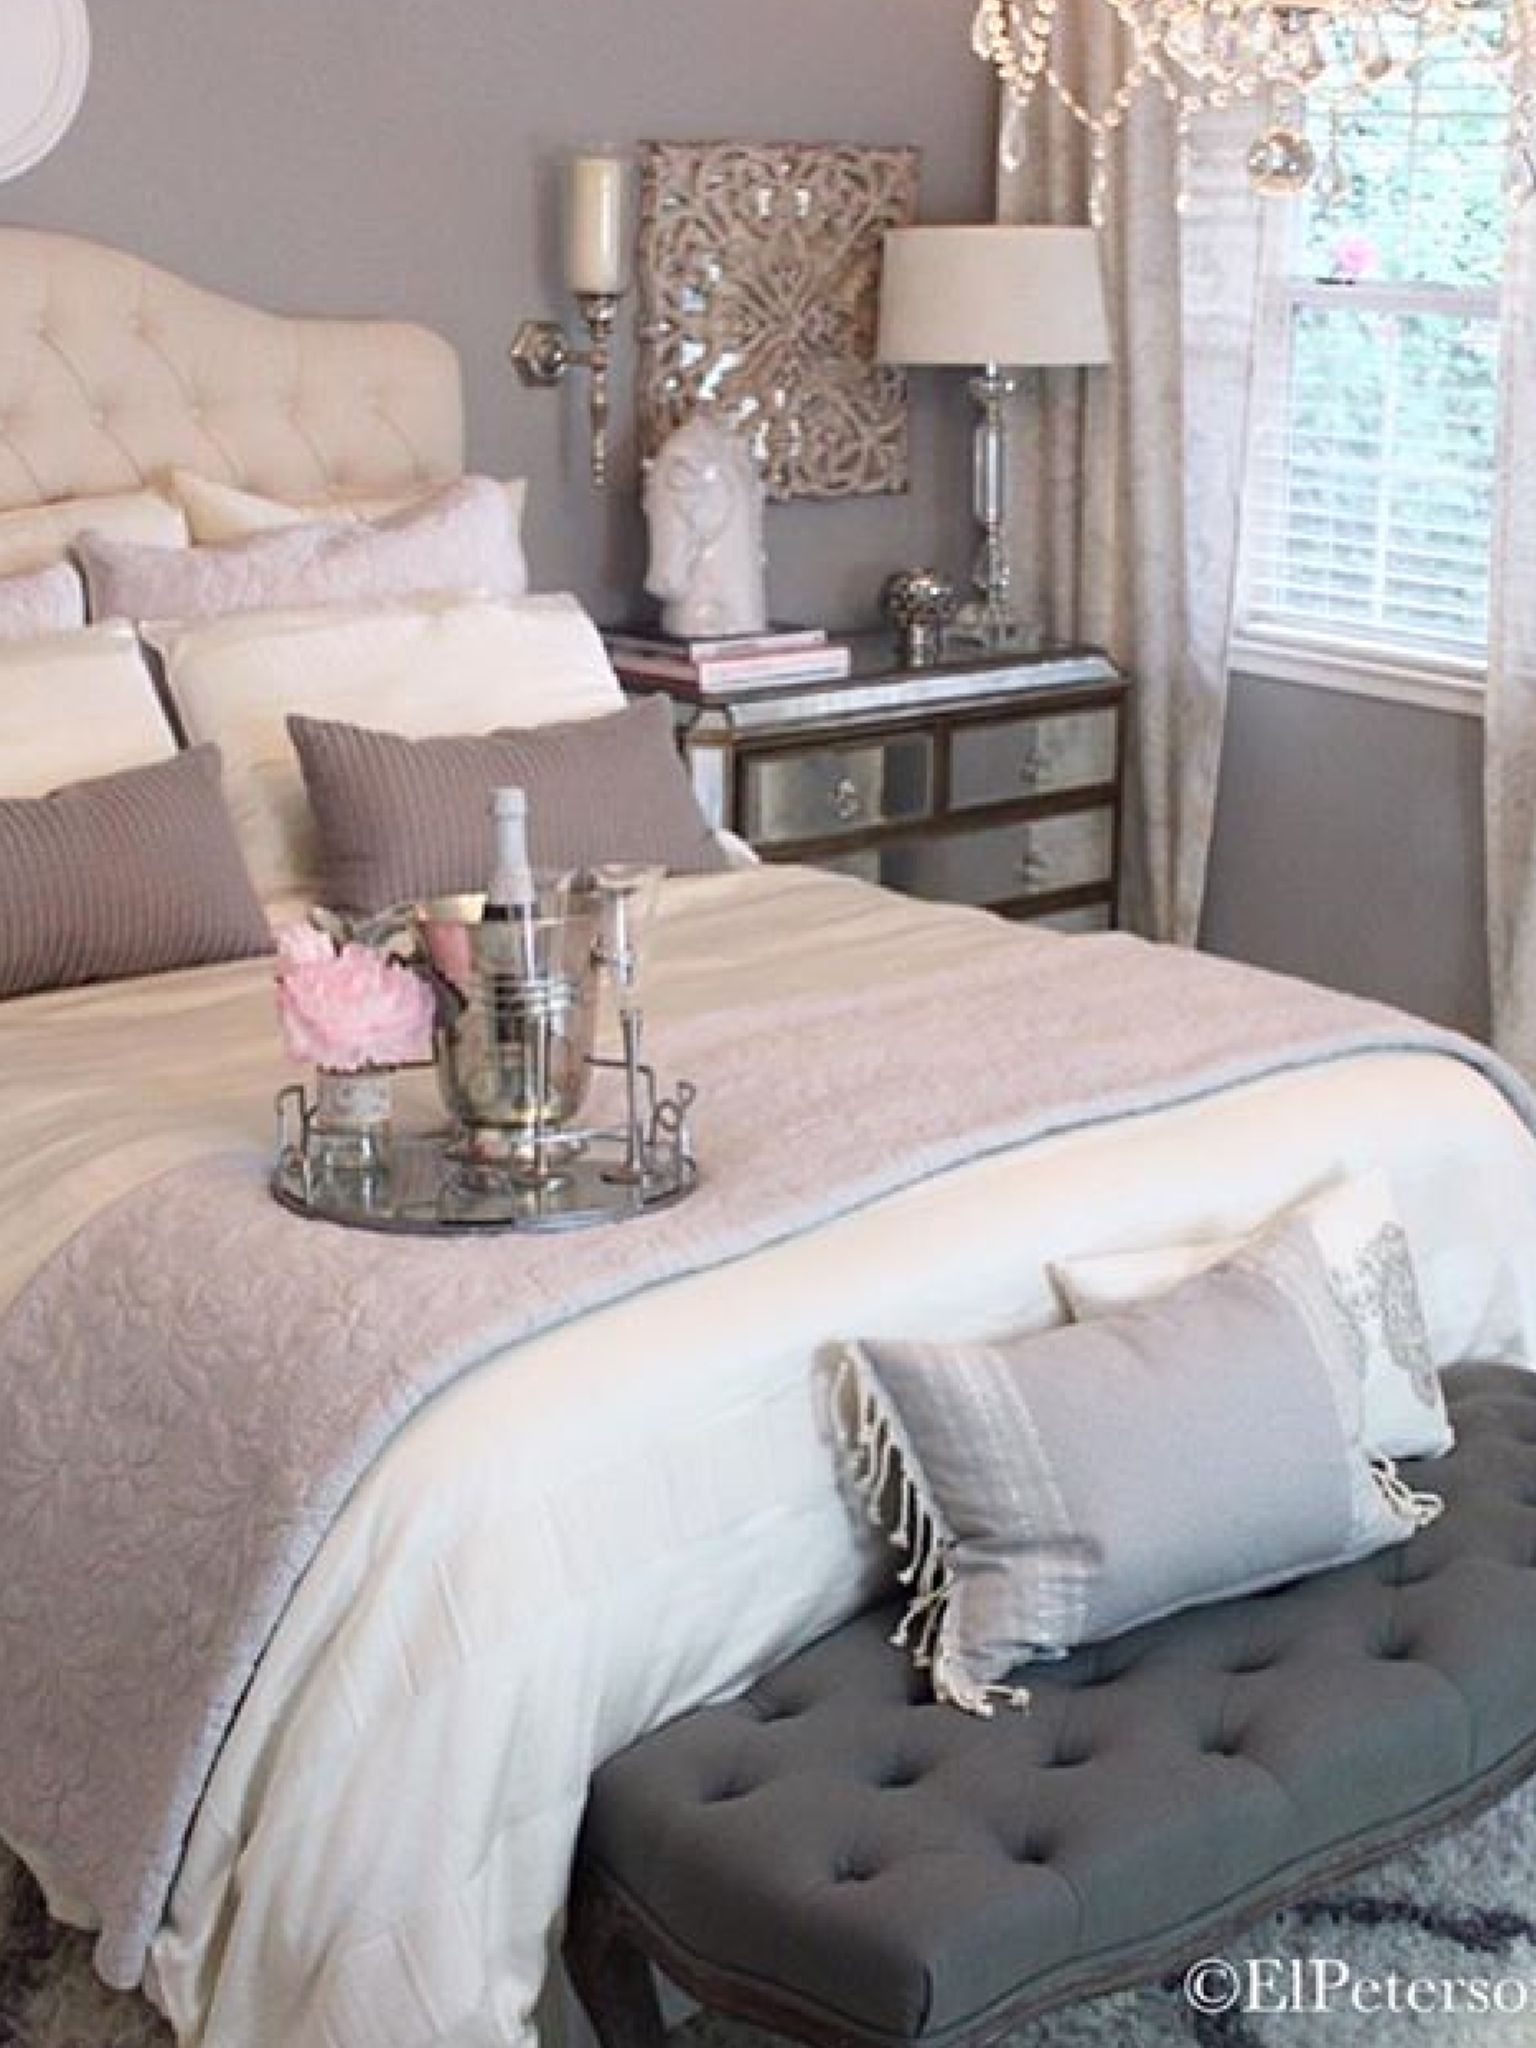 Pin By Landry Thomas On For The Home In 2018 Pinterest Bedroom